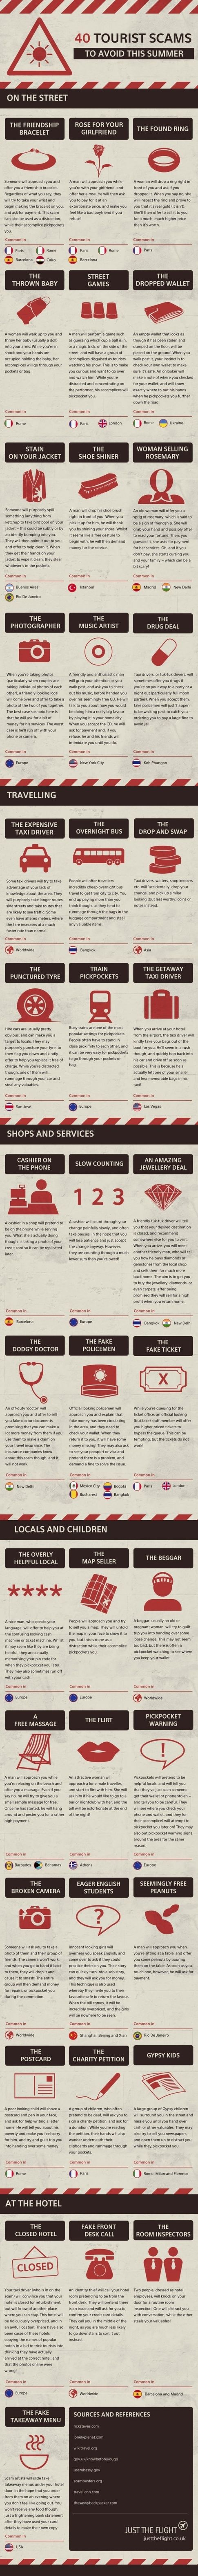 What Is A Scam That Everyone Needs To Be Warned About? --Brandon Le, designer | technologist 1.8k upvotes by Sherwin Wu, Paulinus Nwosu, Elizabeth Leclair, (more) Having backpacked through Europe and Asia, I can say that this infographic is the single greatest awareness resource for travelers in general. During my travels, I have seen almost every one of these techniques used and/or attempted. - Quora